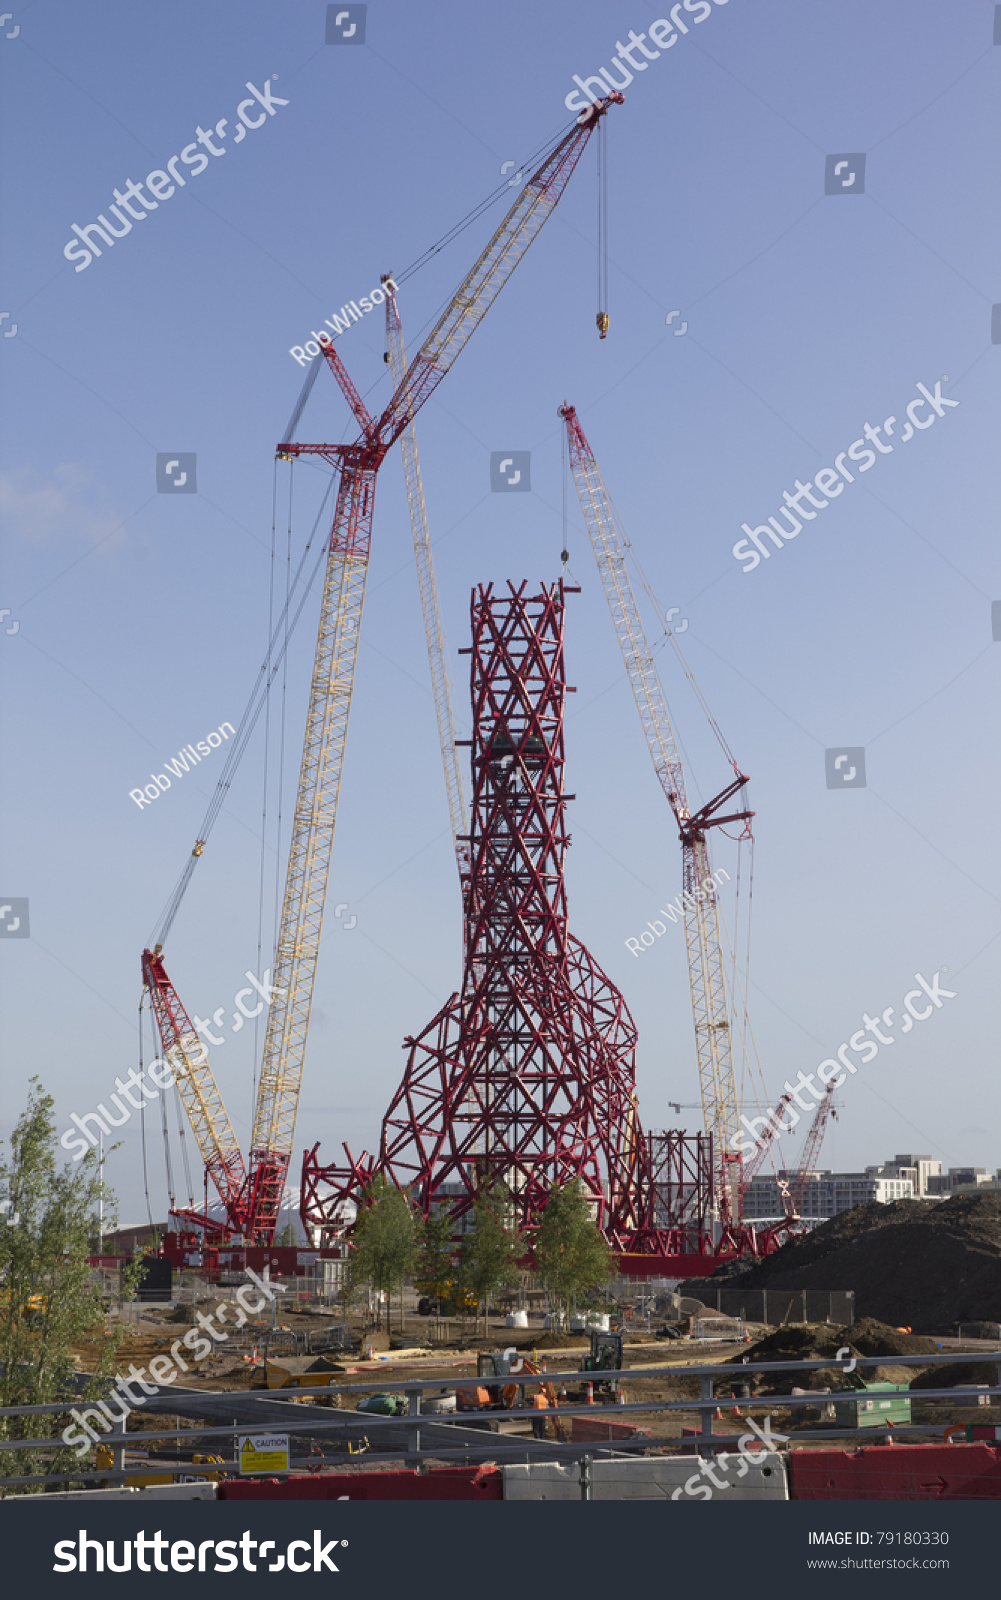 London may 31 arcelormittal orbit nears stock photo 79180330 london may 31 the arcelormittal orbit nears completion in the olympic park in stratford buycottarizona